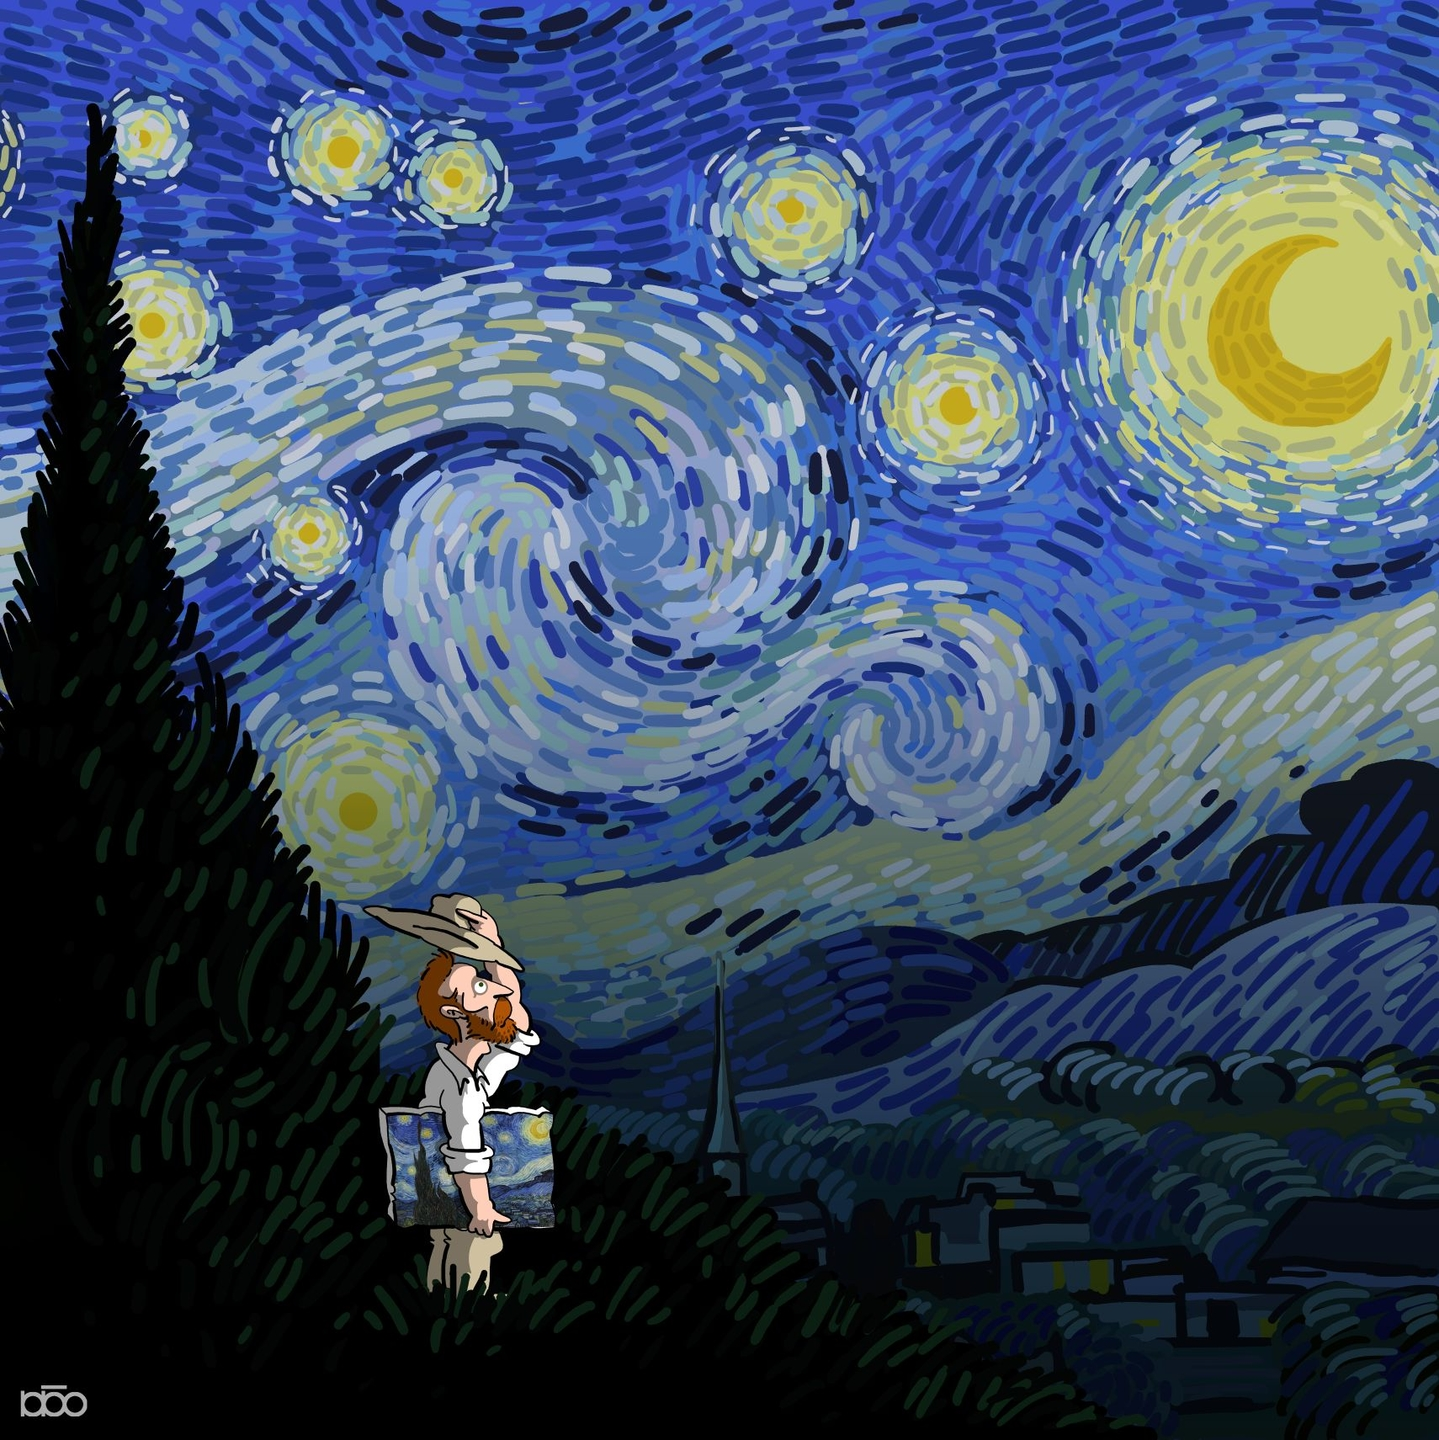 What does Starry Night mean to Alireza